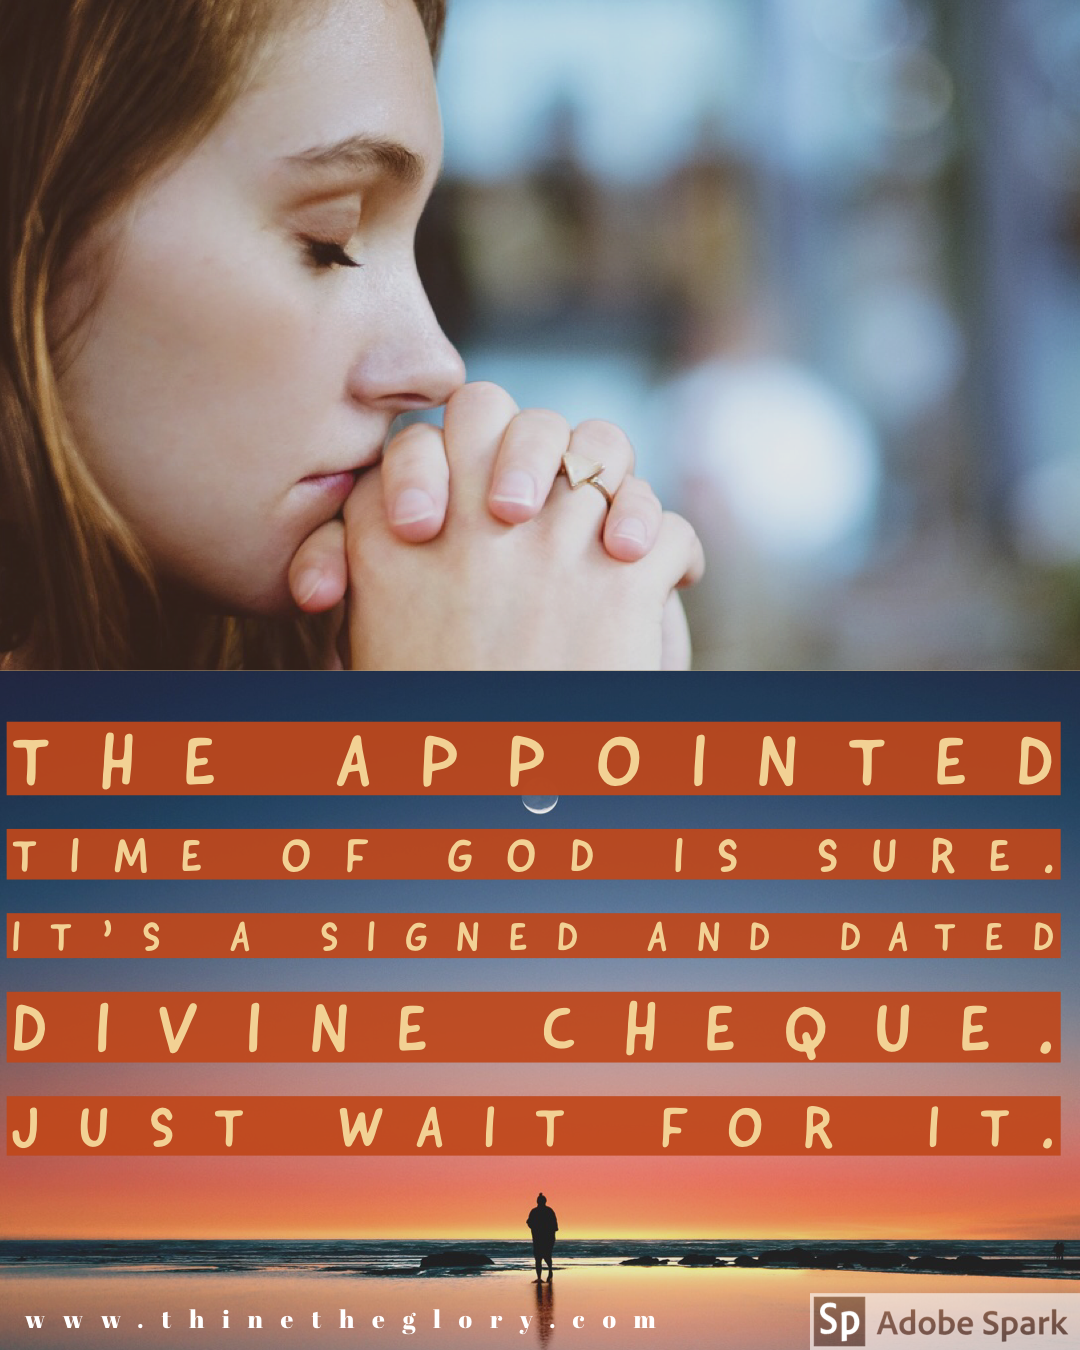 WAITING ON GOD'S APPOINTED TIME